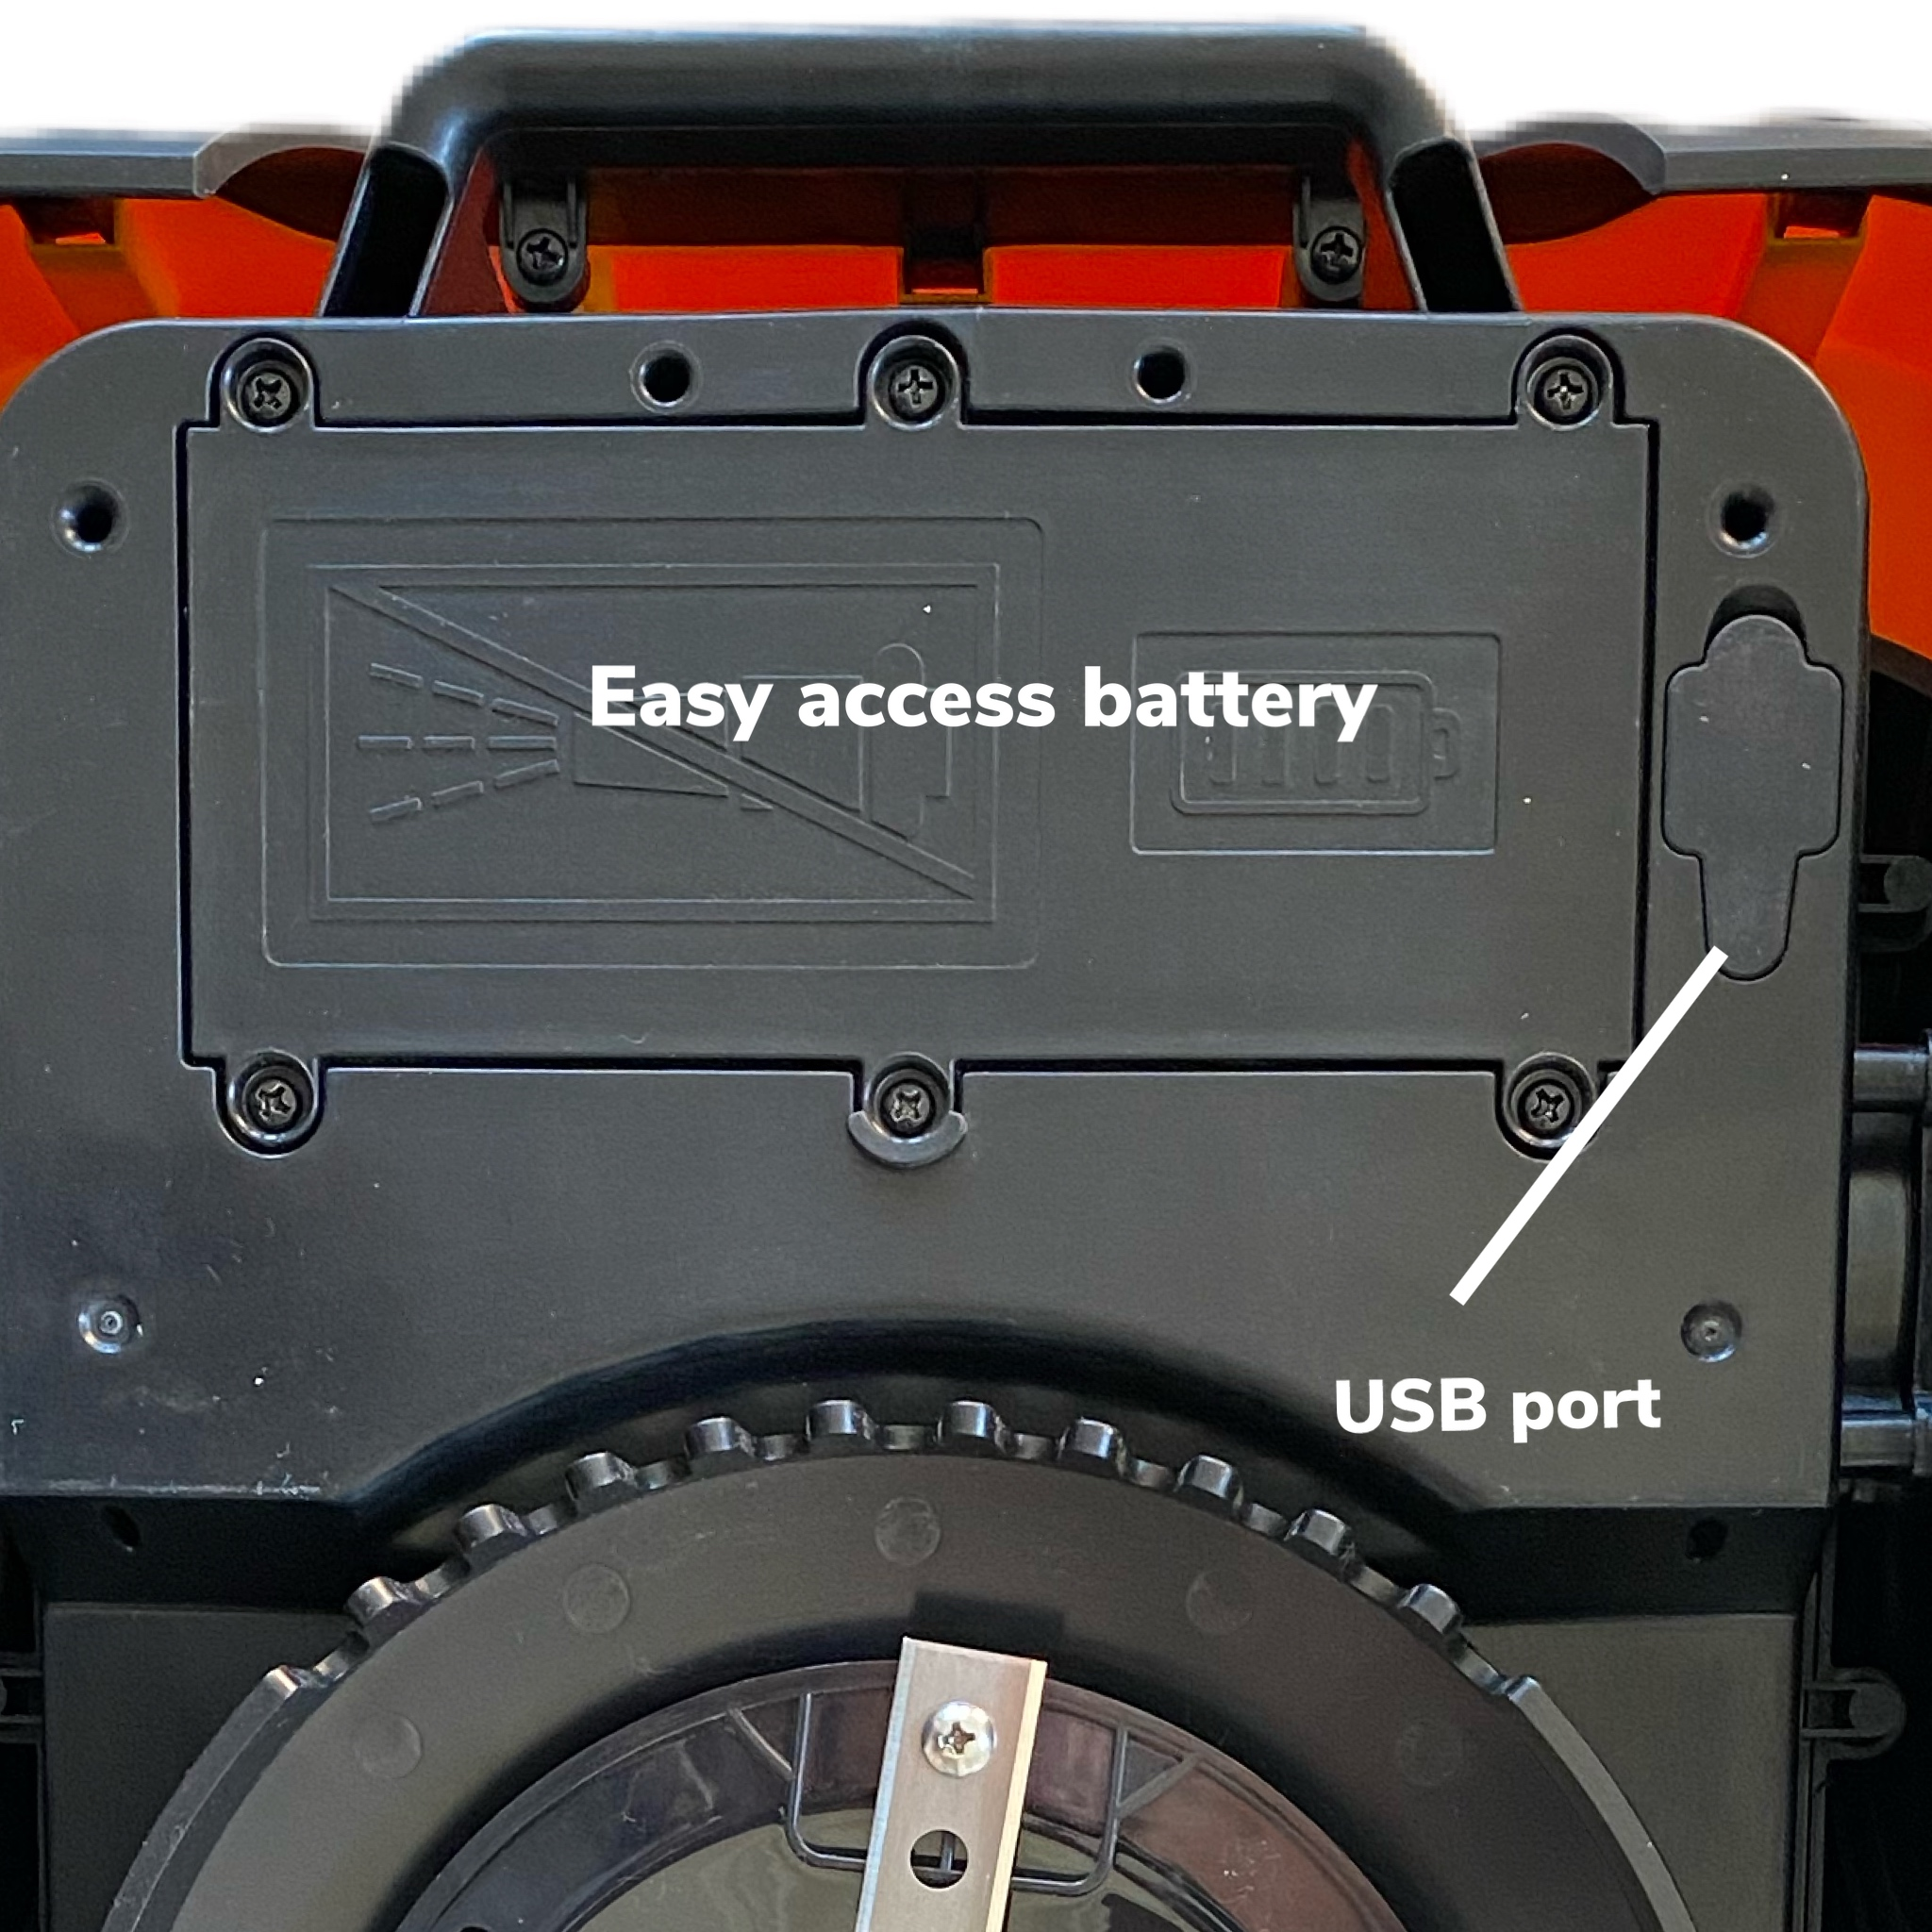 Easy access battery